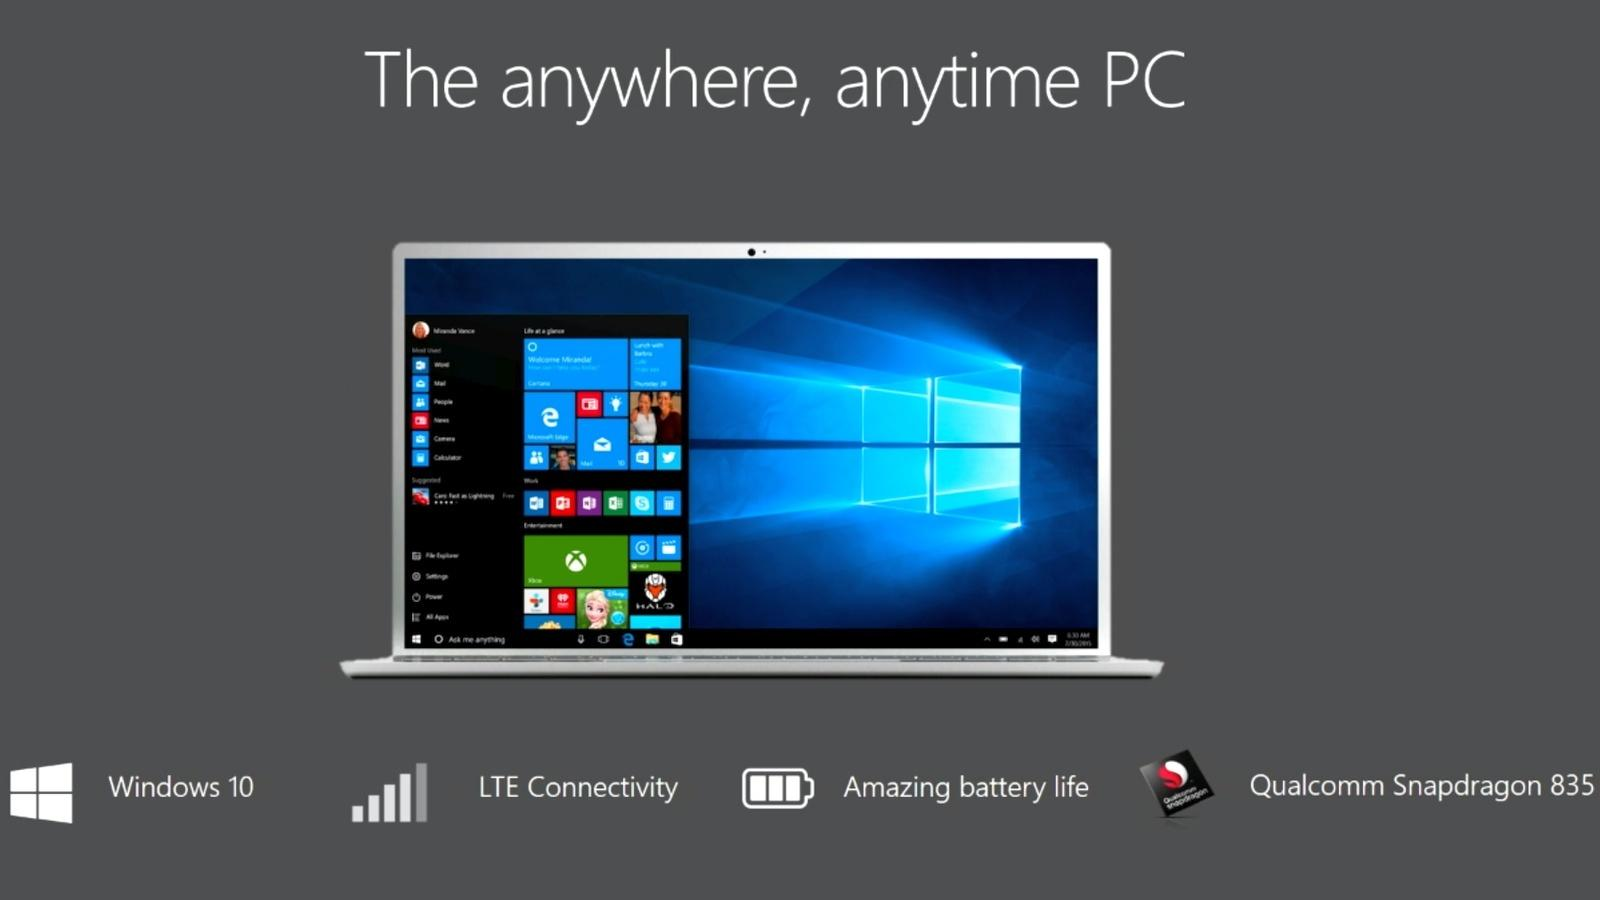 Microsoft Always Connected PC